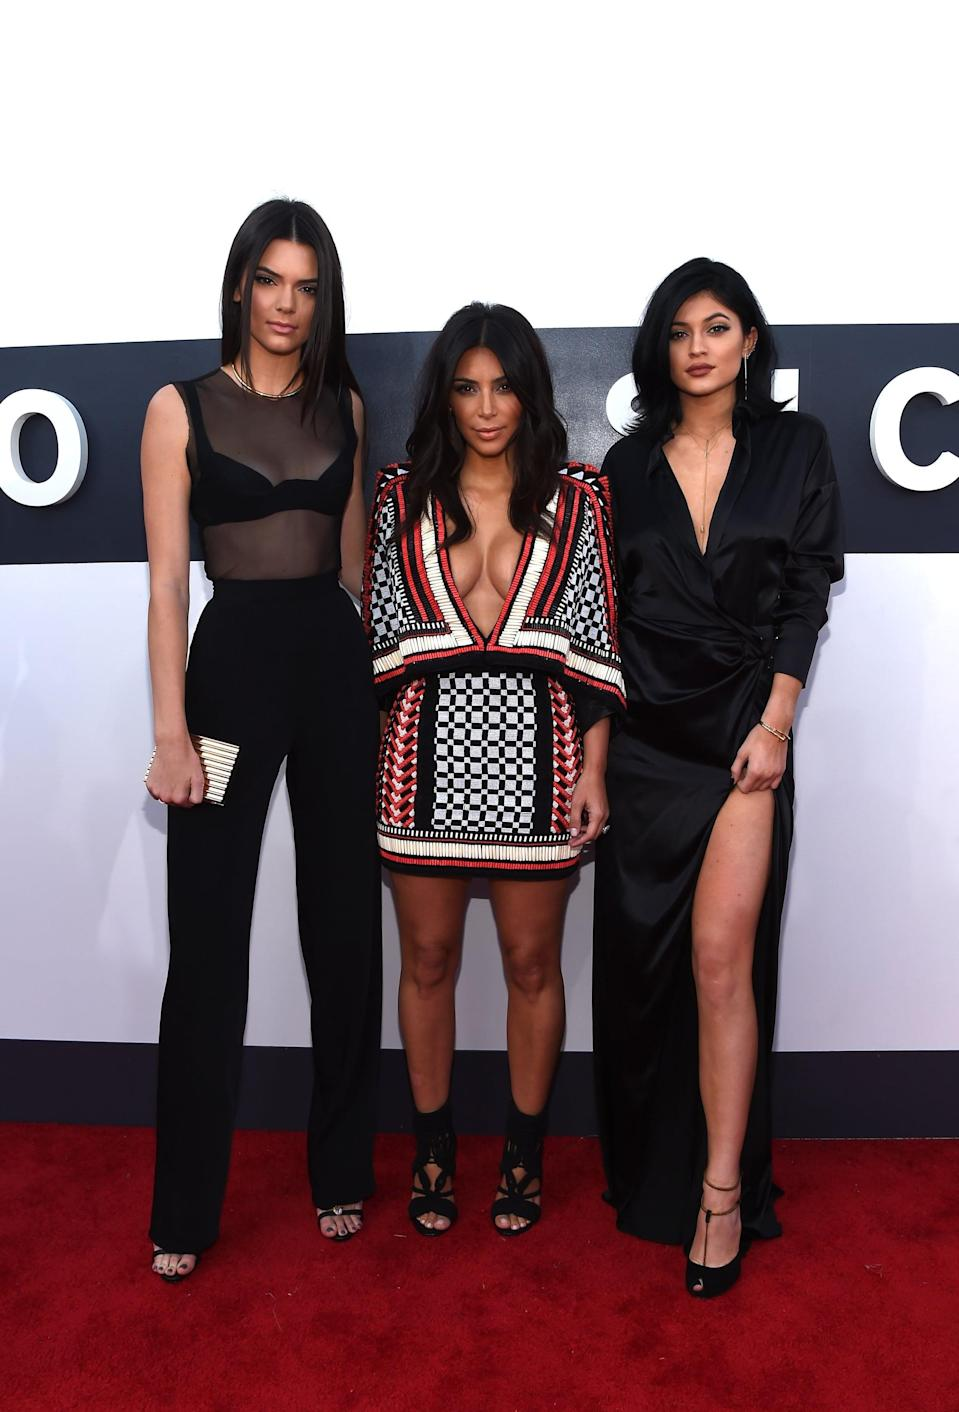 "<p>By 2014, Kendall and Kylie were making names for themselves and also became familiar faces on the red carpet. This was also the year <a href=""https://www.popsugar.com/fashion/photo-gallery/35465102/image/35552181/Kim-Kardashian-2014-MTV-VMAs"" class=""link rapid-noclick-resp"" rel=""nofollow noopener"" target=""_blank"" data-ylk=""slk:where Balmain reigned supreme"">where Balmain reigned supreme</a> in Kim Kardashians' closet. </p>"